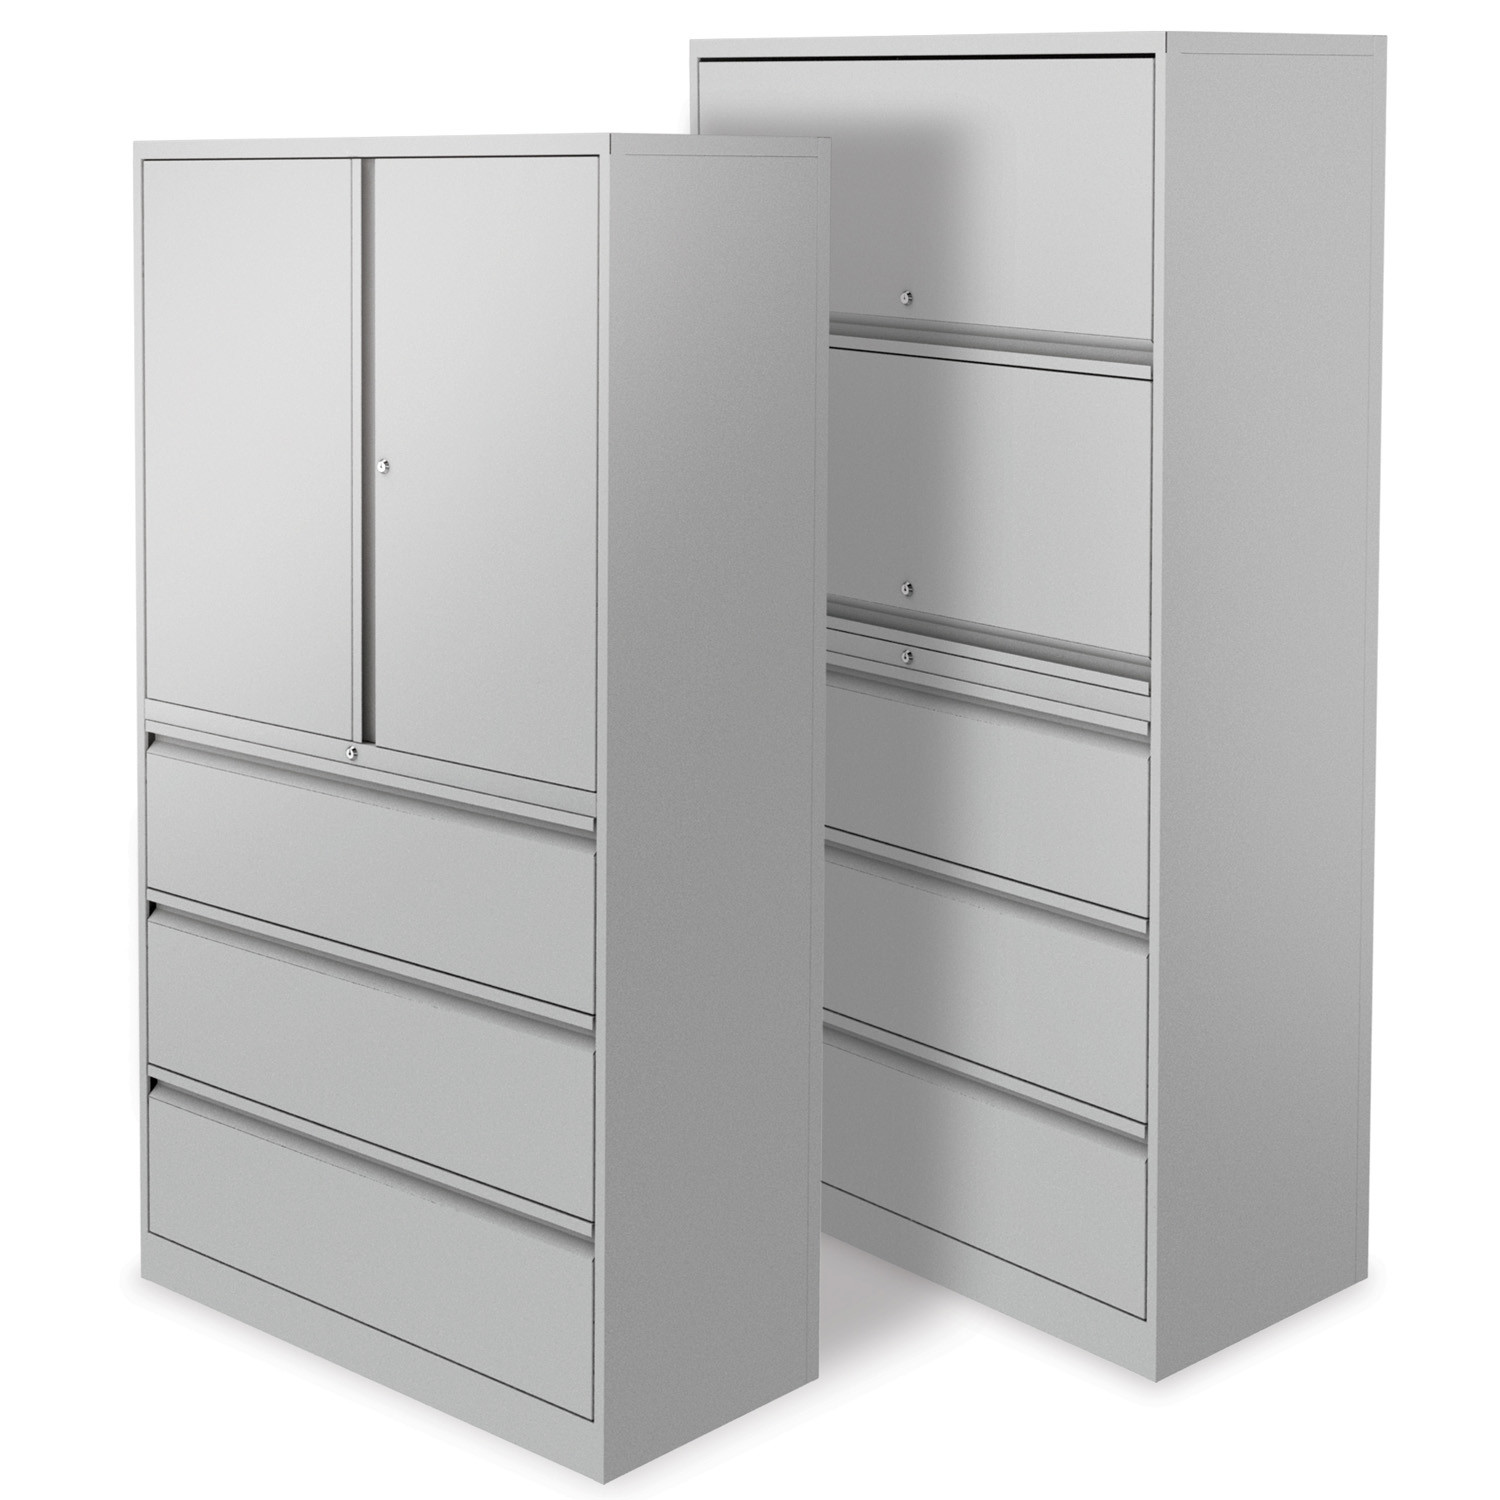 Combi:Store Cabinets